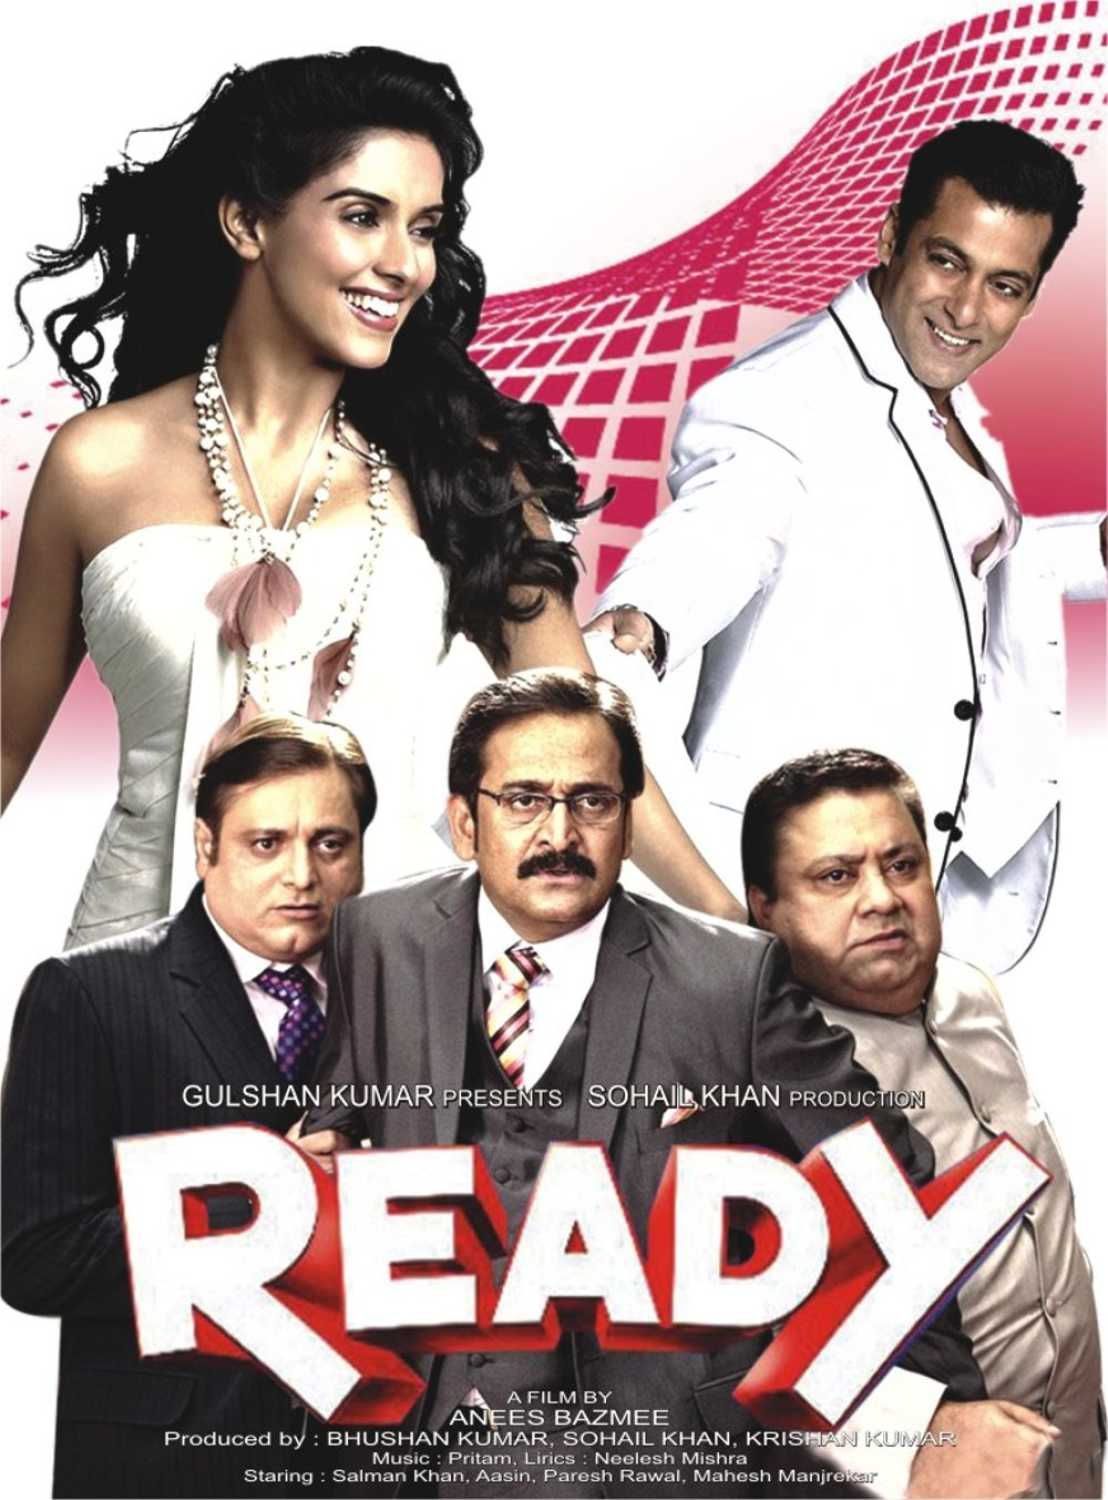 Ready Day-wise Box Office Collection Report